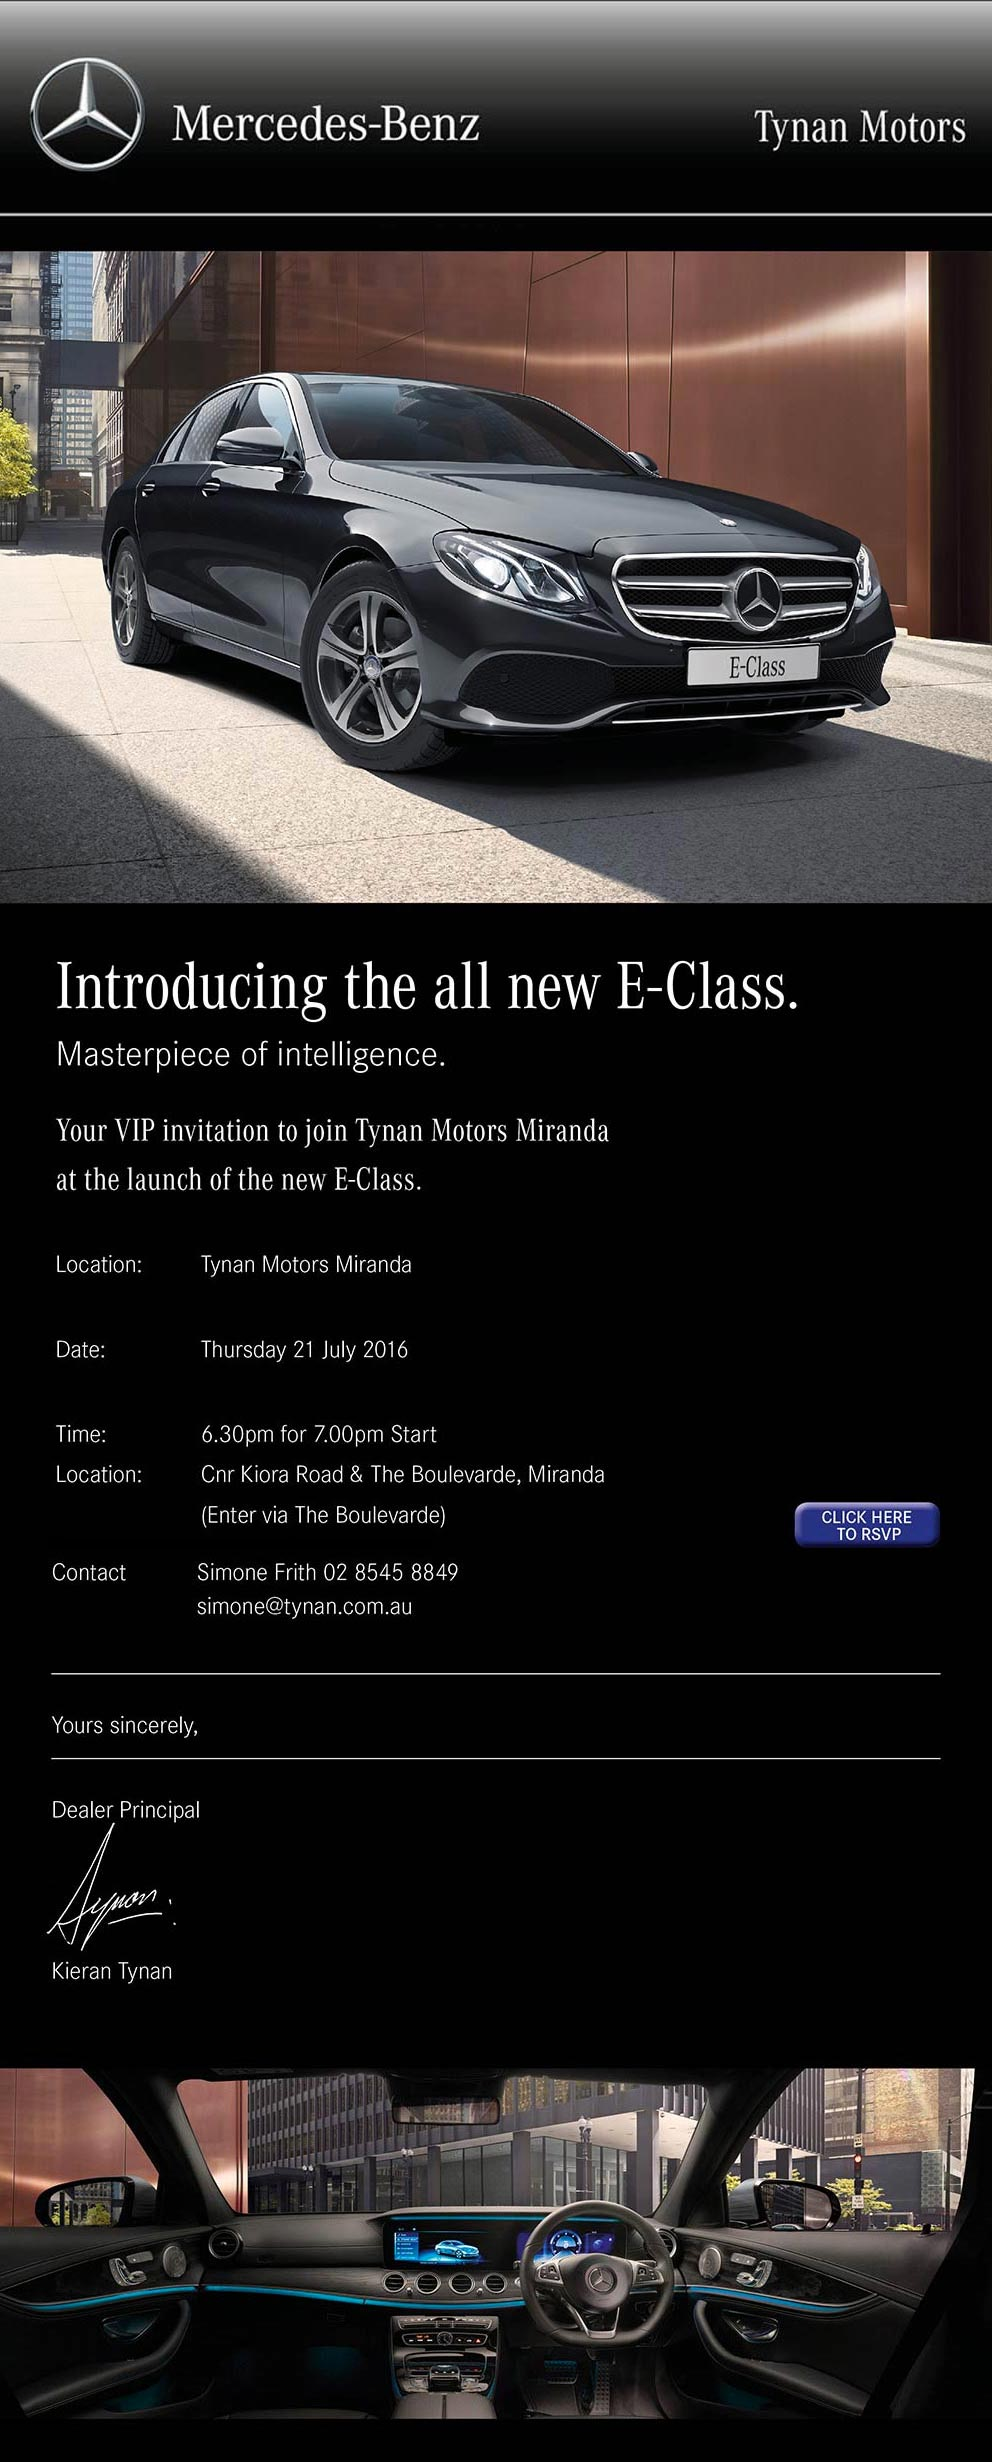 Used Cars Dealerships >> Invitation to Mercedes-Benz E-Class Launch - Tynan Motors Car Sales